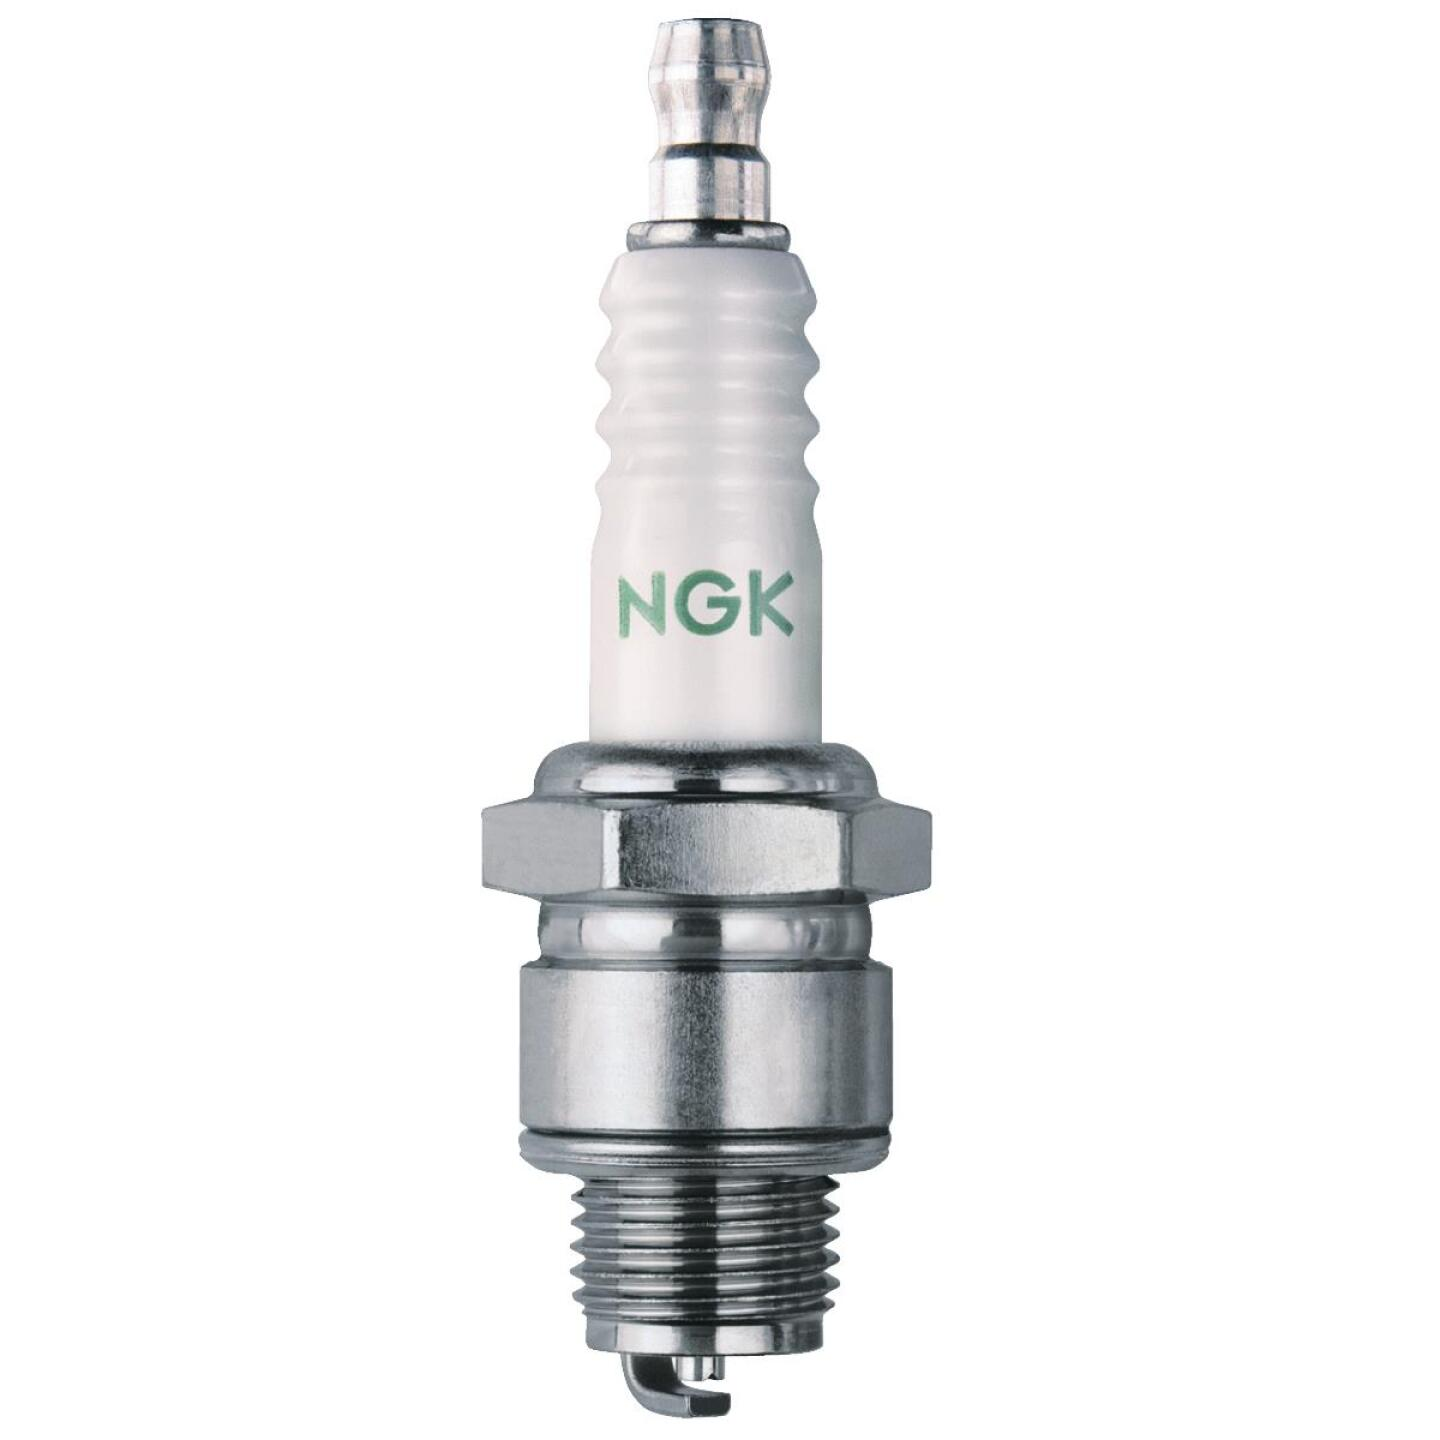 NGK CMR6A Lawn and Garden Spark Plug Image 1